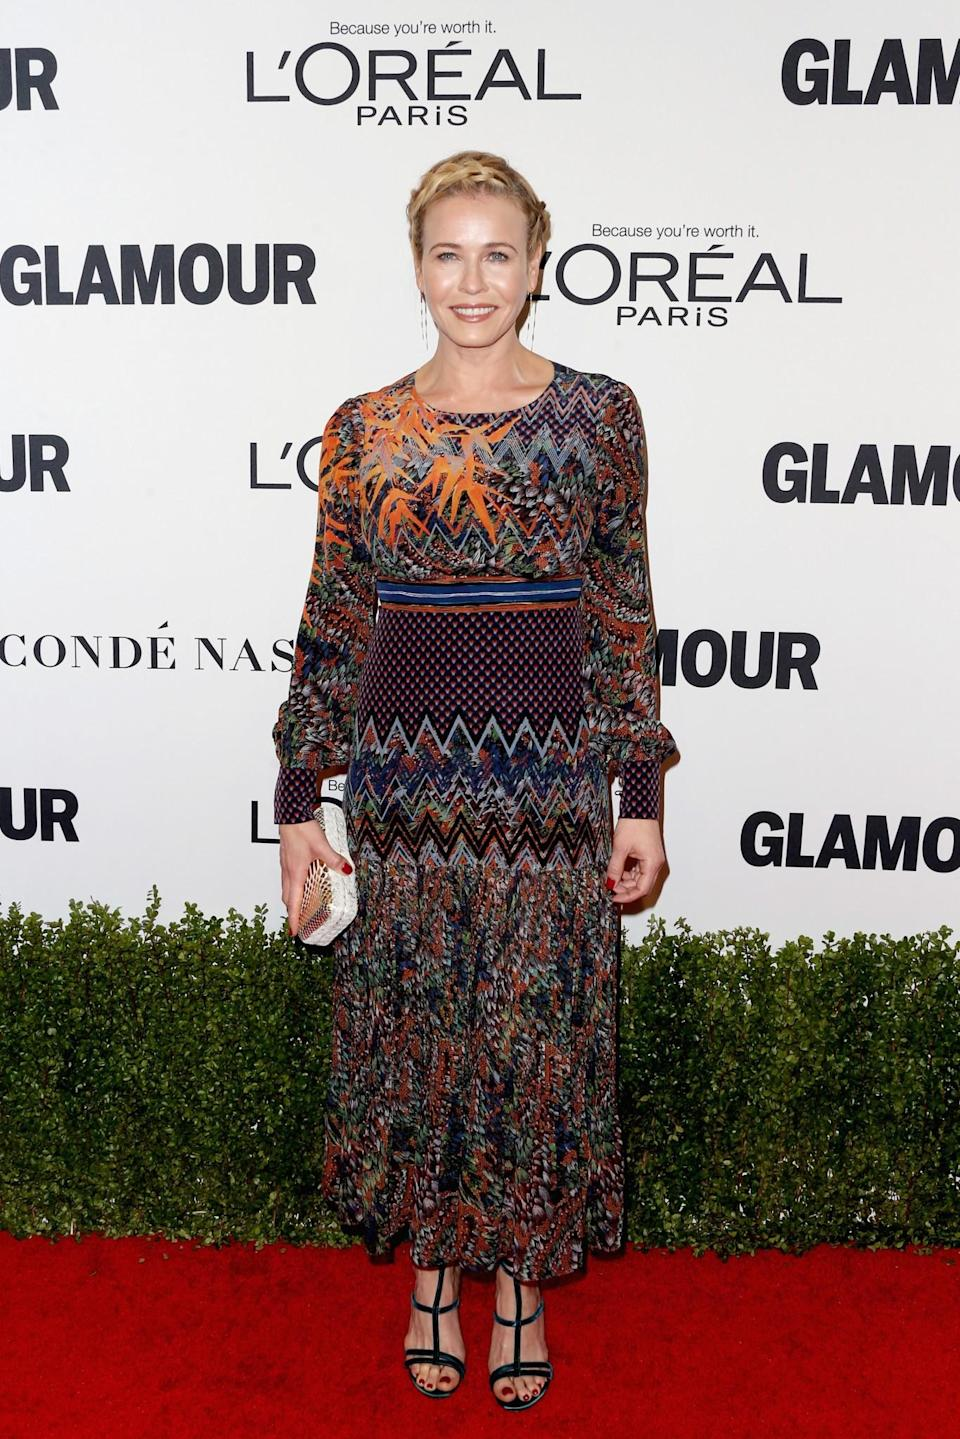 <p>Chelsea's multi-printed dress was a bit too much for the eyes to take in with her nice braided do providing somewhat of a milkmaid vibe. <i>[Photo: Getty]</i> </p>